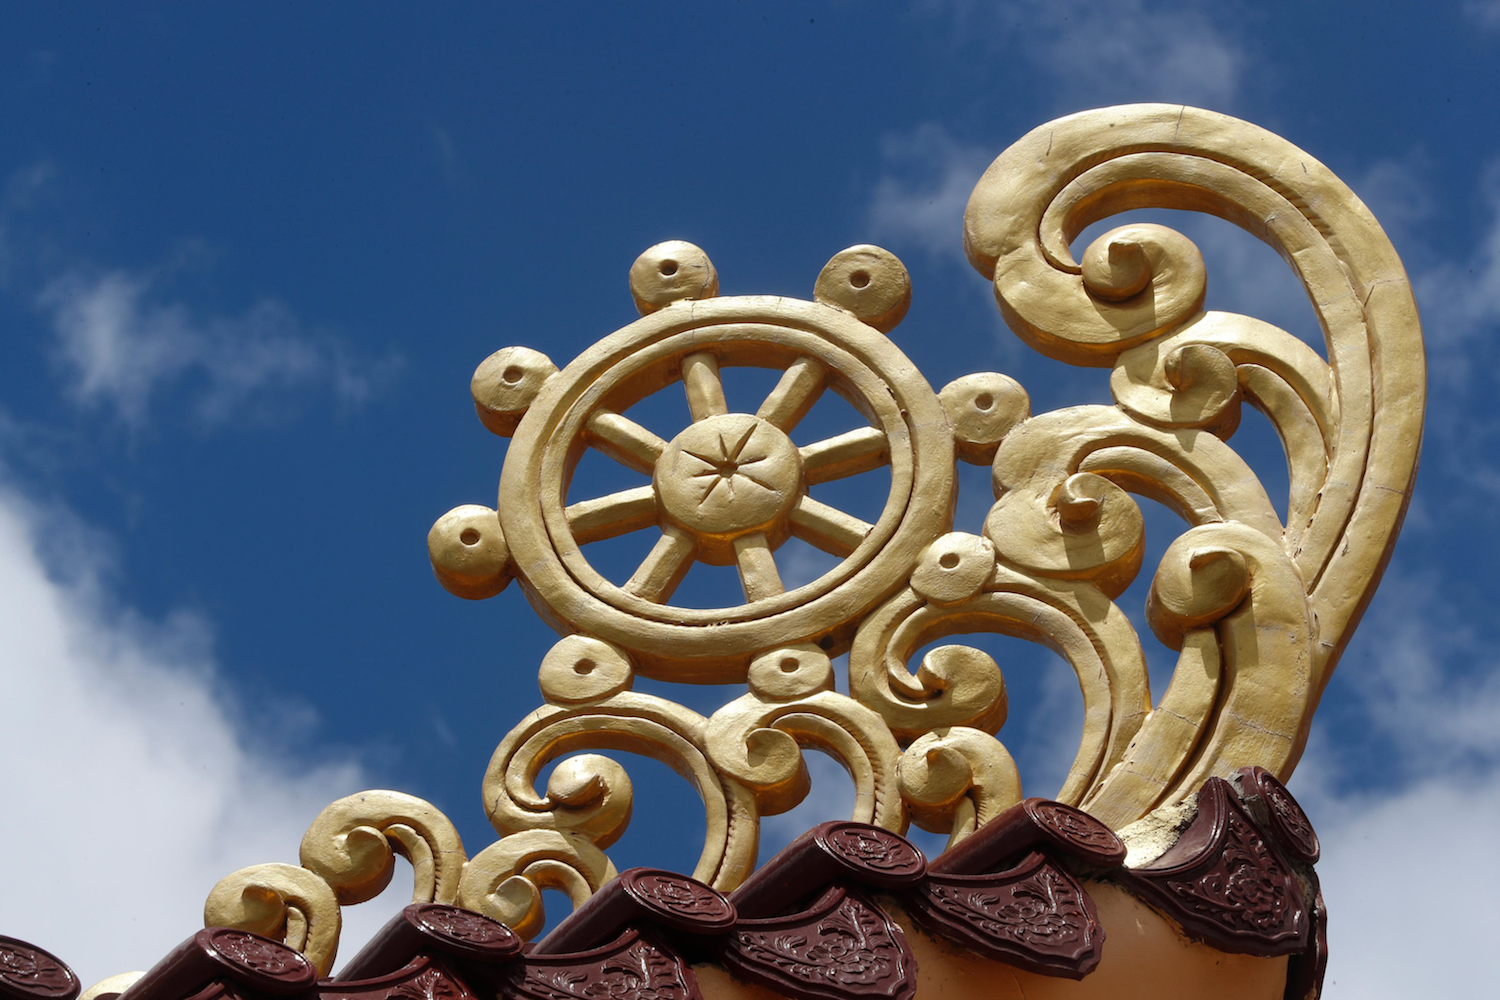 Golden painted Dhamma Wheel set against the sky